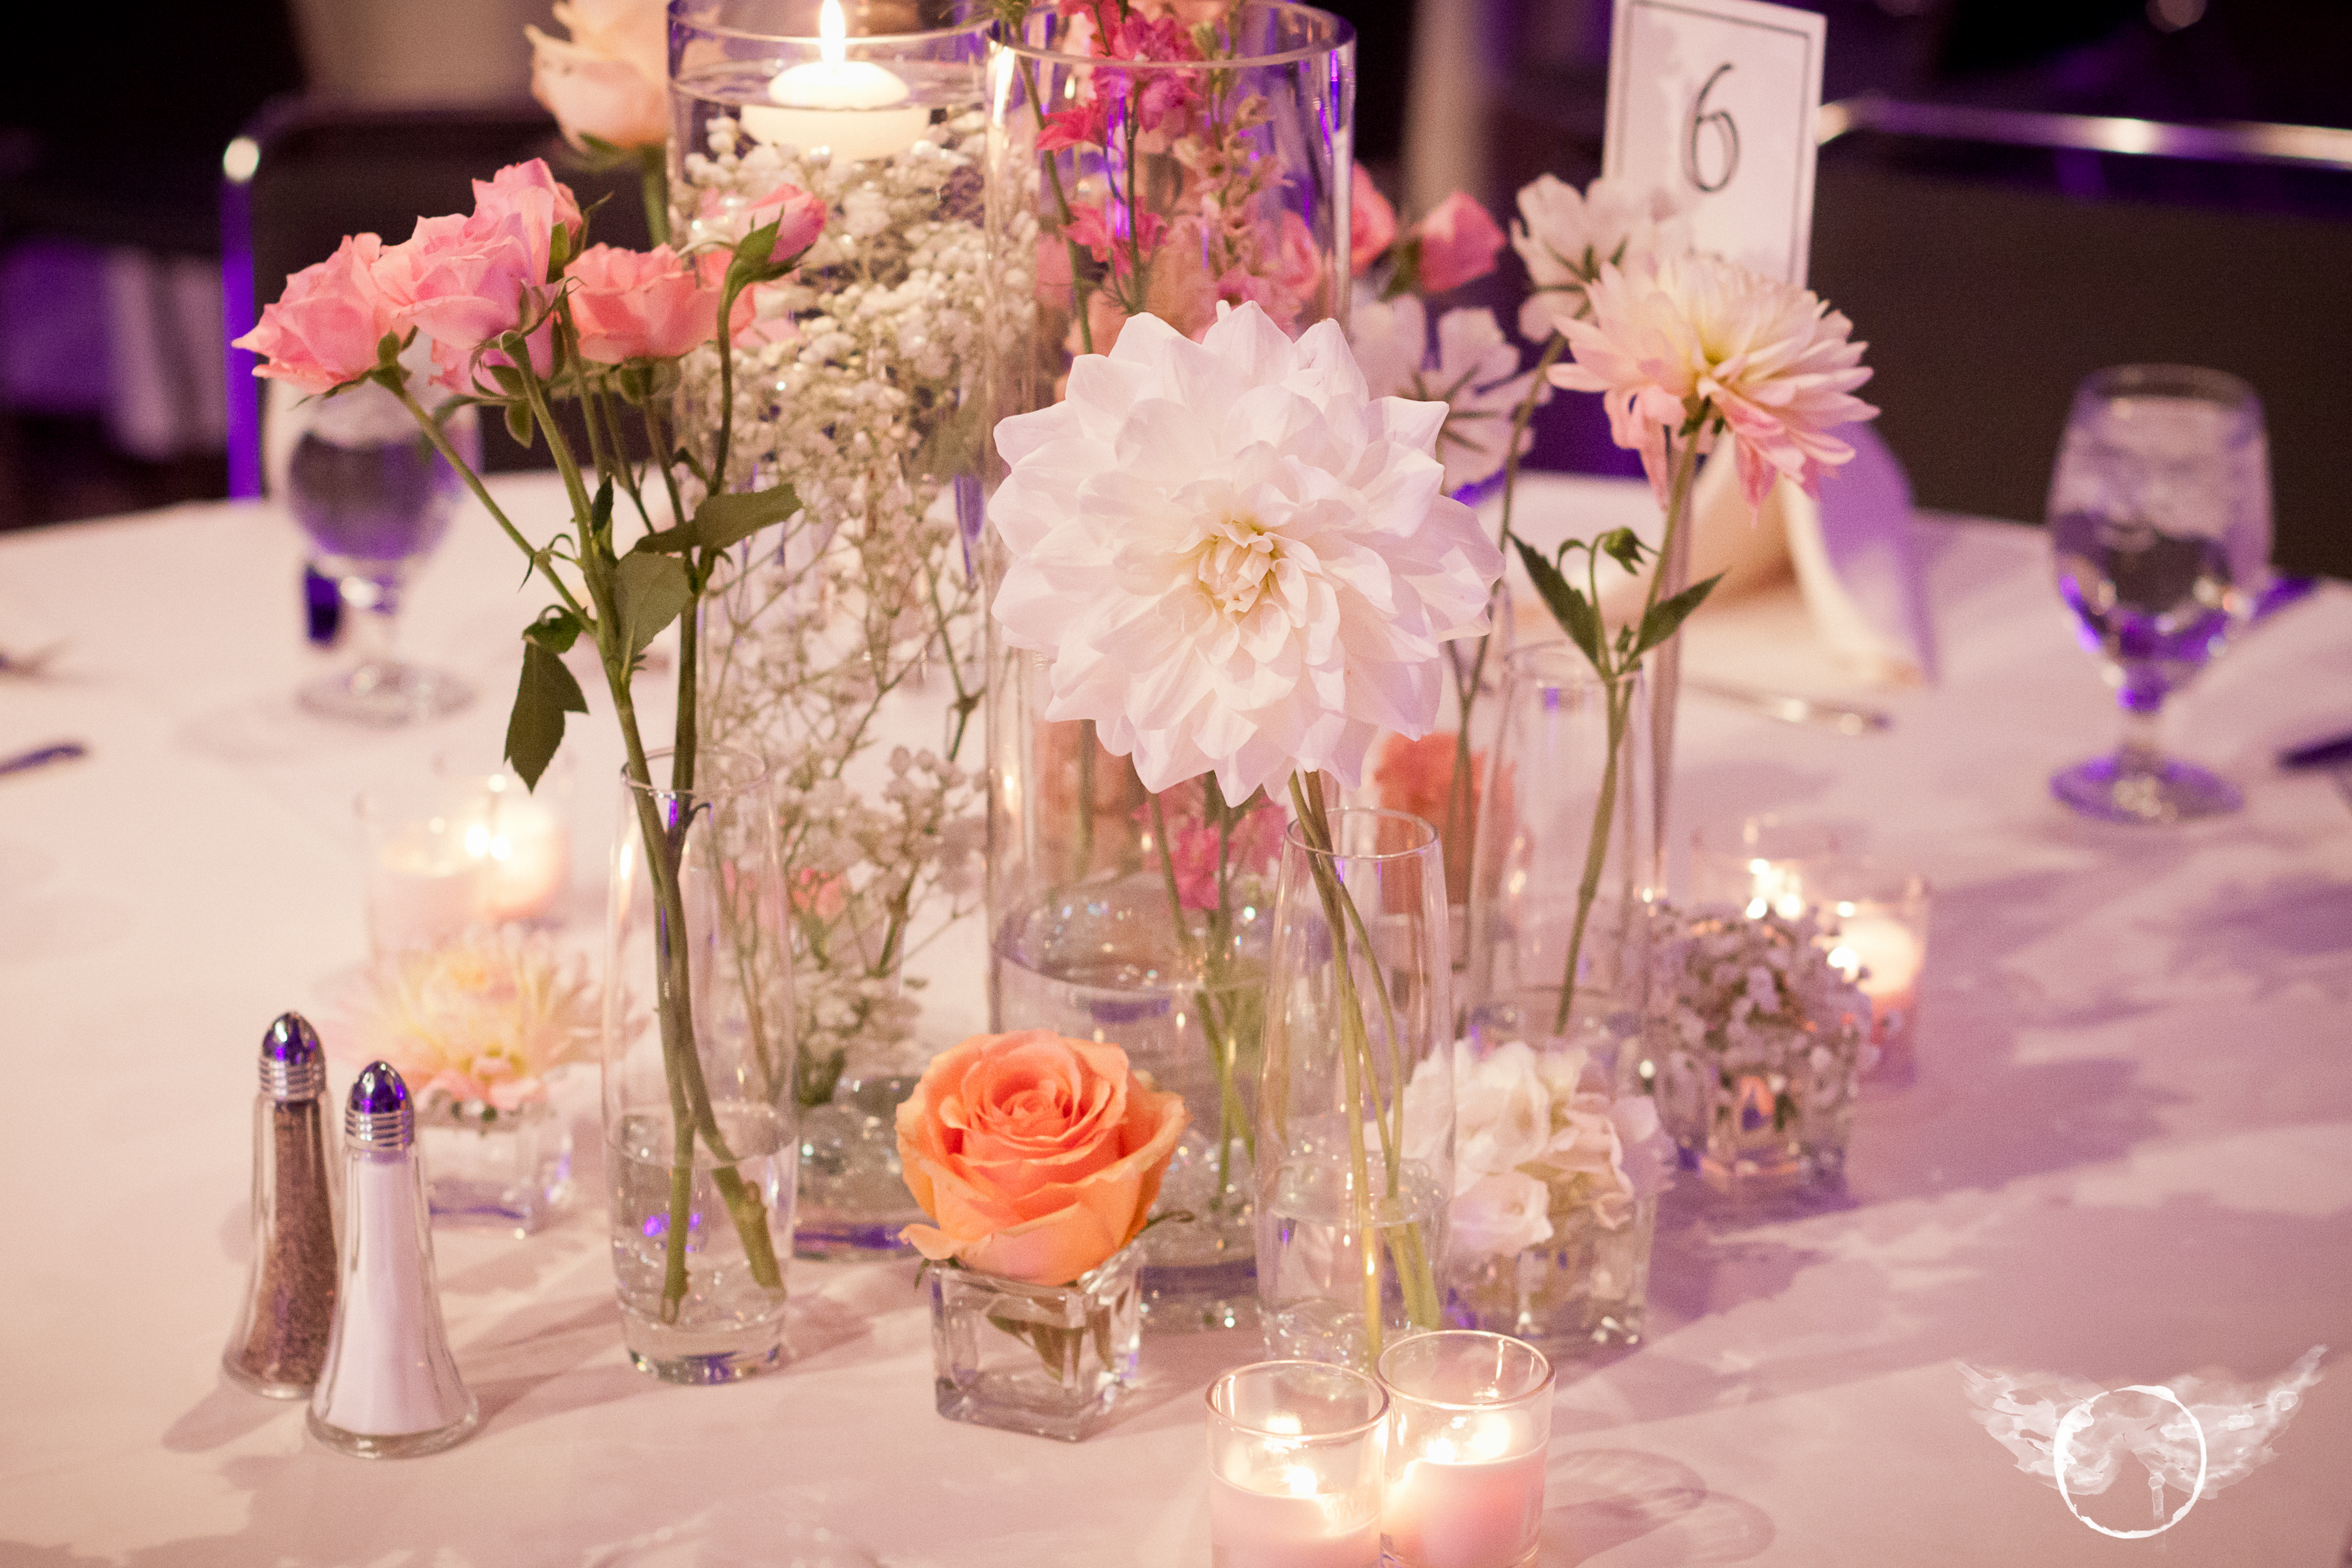 Romantic Style Wedding In Peach, Pearl And Blush